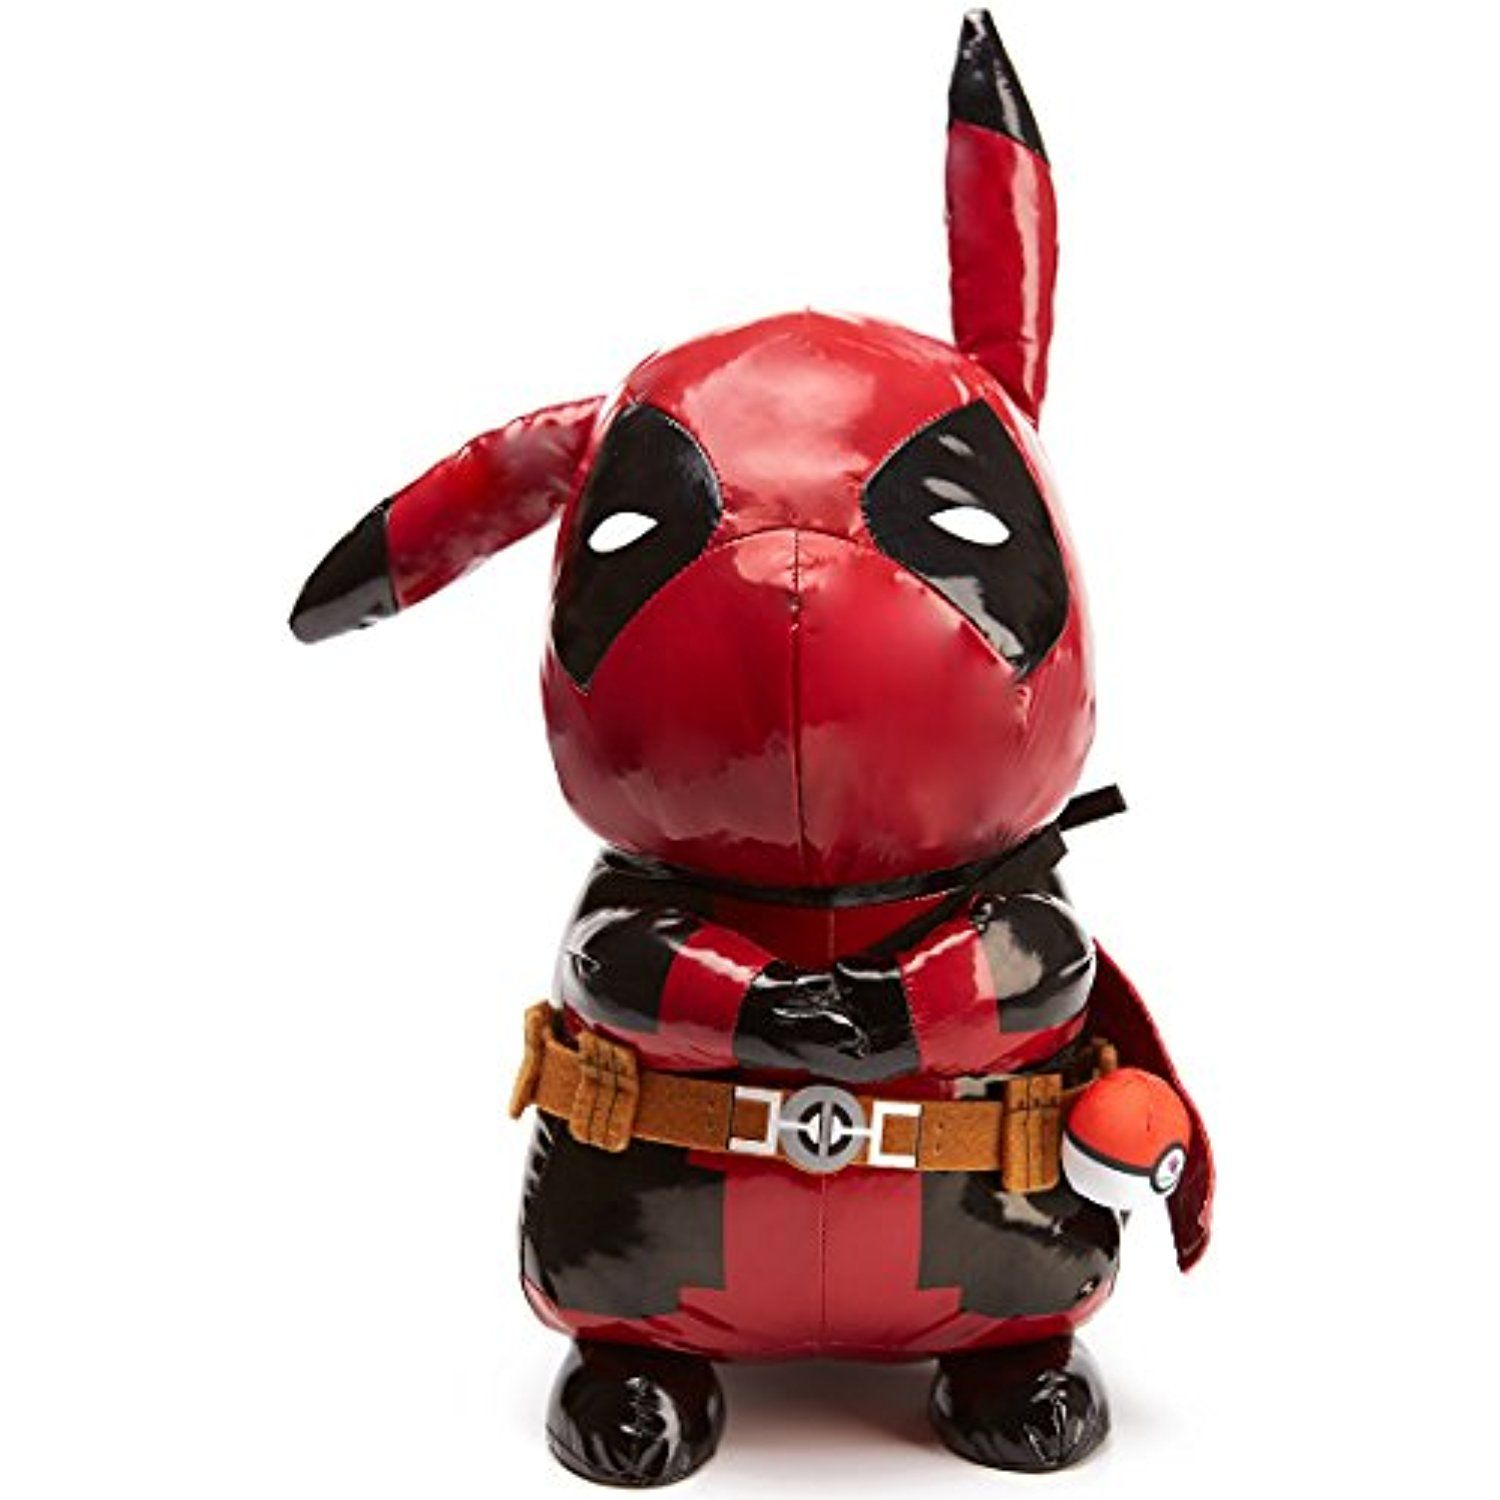 a204a0113 Pokemon Plush - Pikachu Plush and Deadpool Action Figure Plushes 2 in 1 -  'Pikapool Plush Toy'- 18